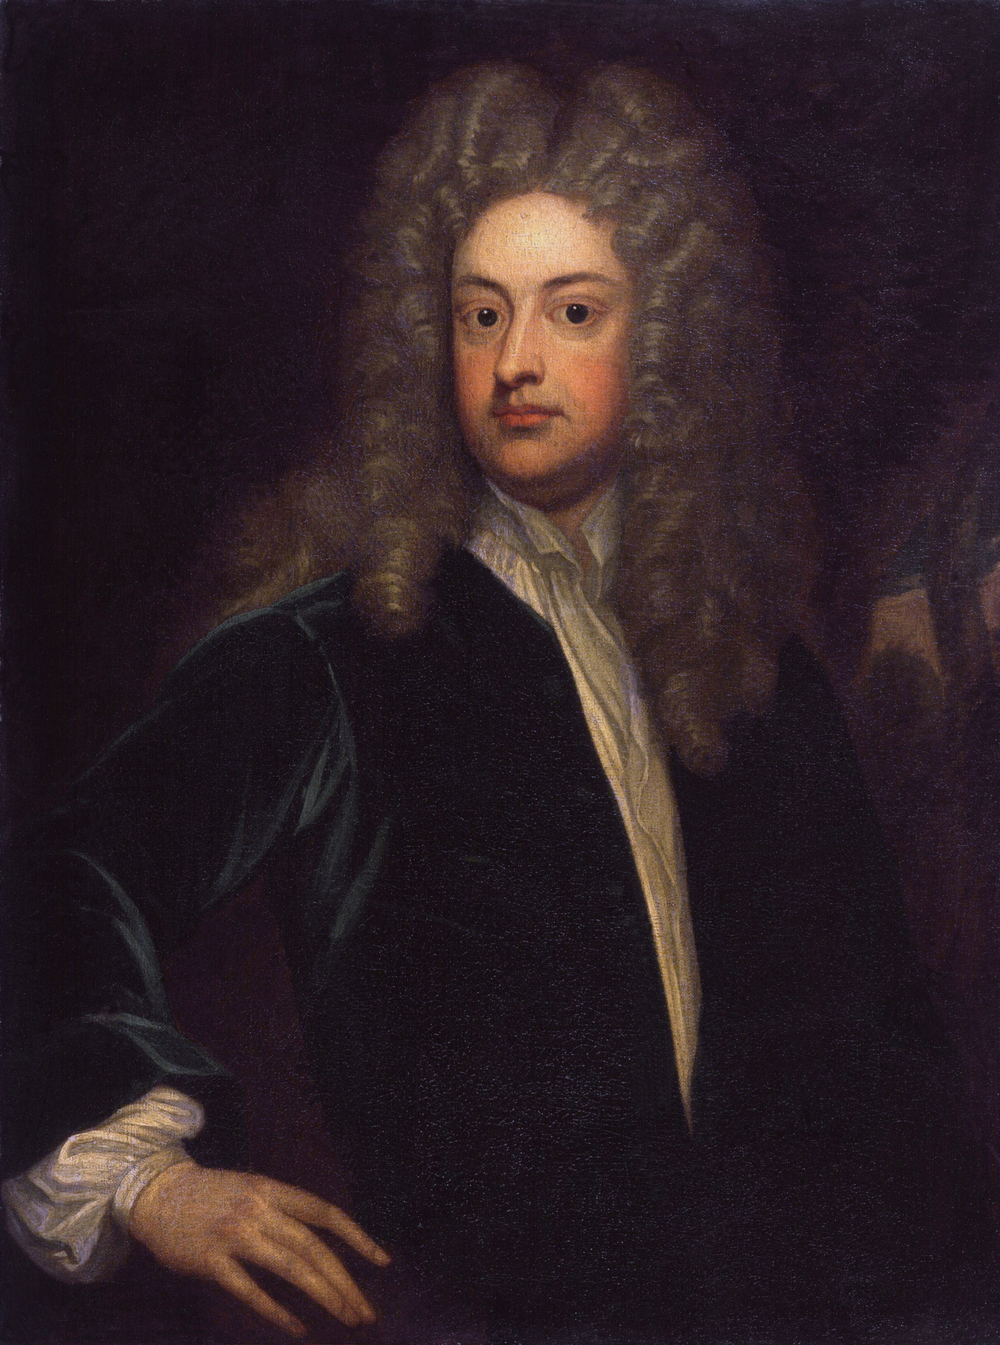 Joseph Addison by  Sir Godfrey Kneller